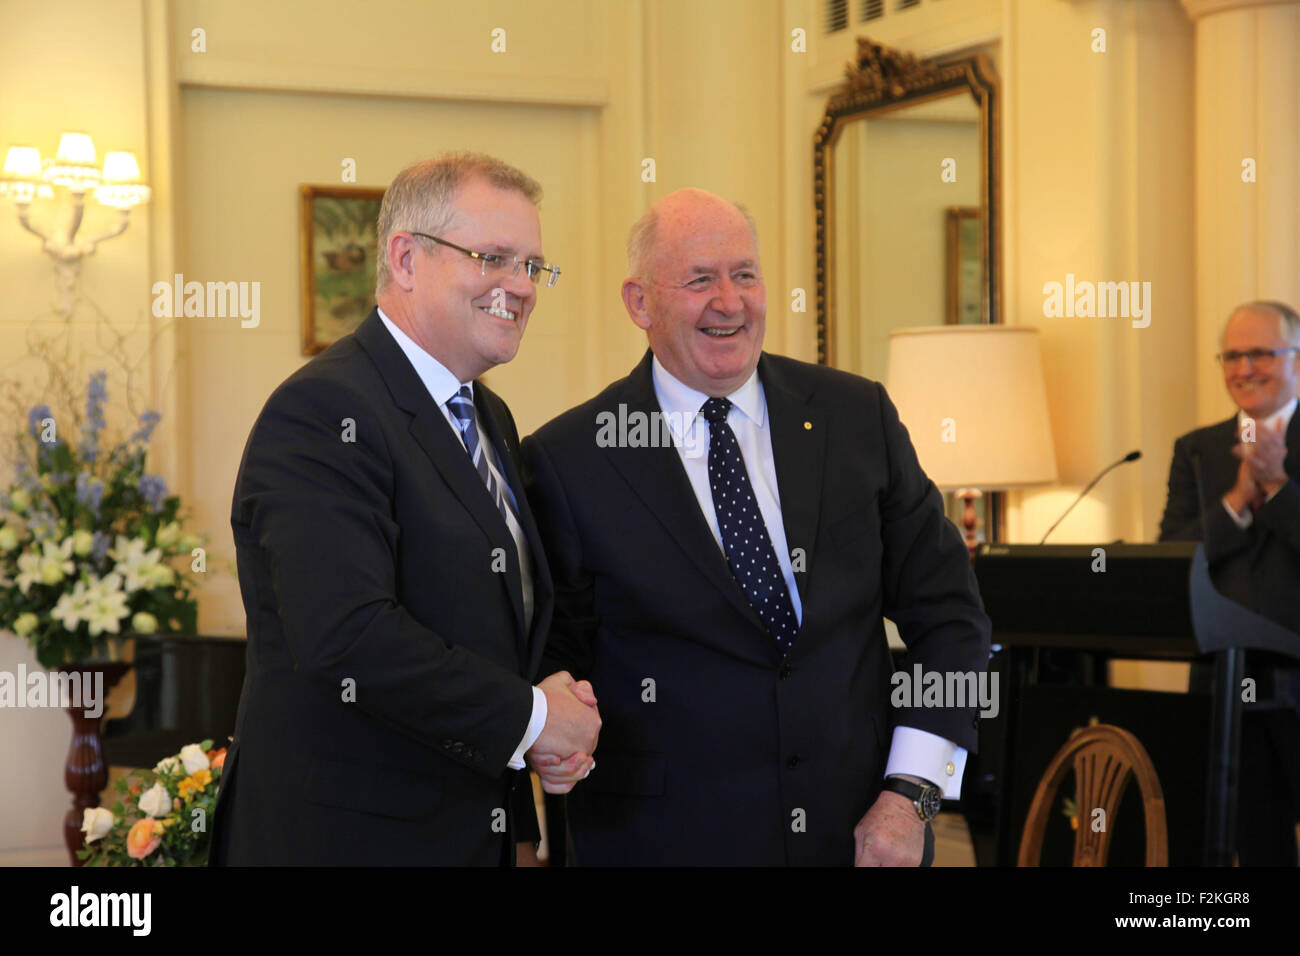 Canberra, Australia. 21st Sep, 2015. Scott Morrison (L) is sworn in as Treasurer by Governor General Sir Peter Cosgrove - Stock Image